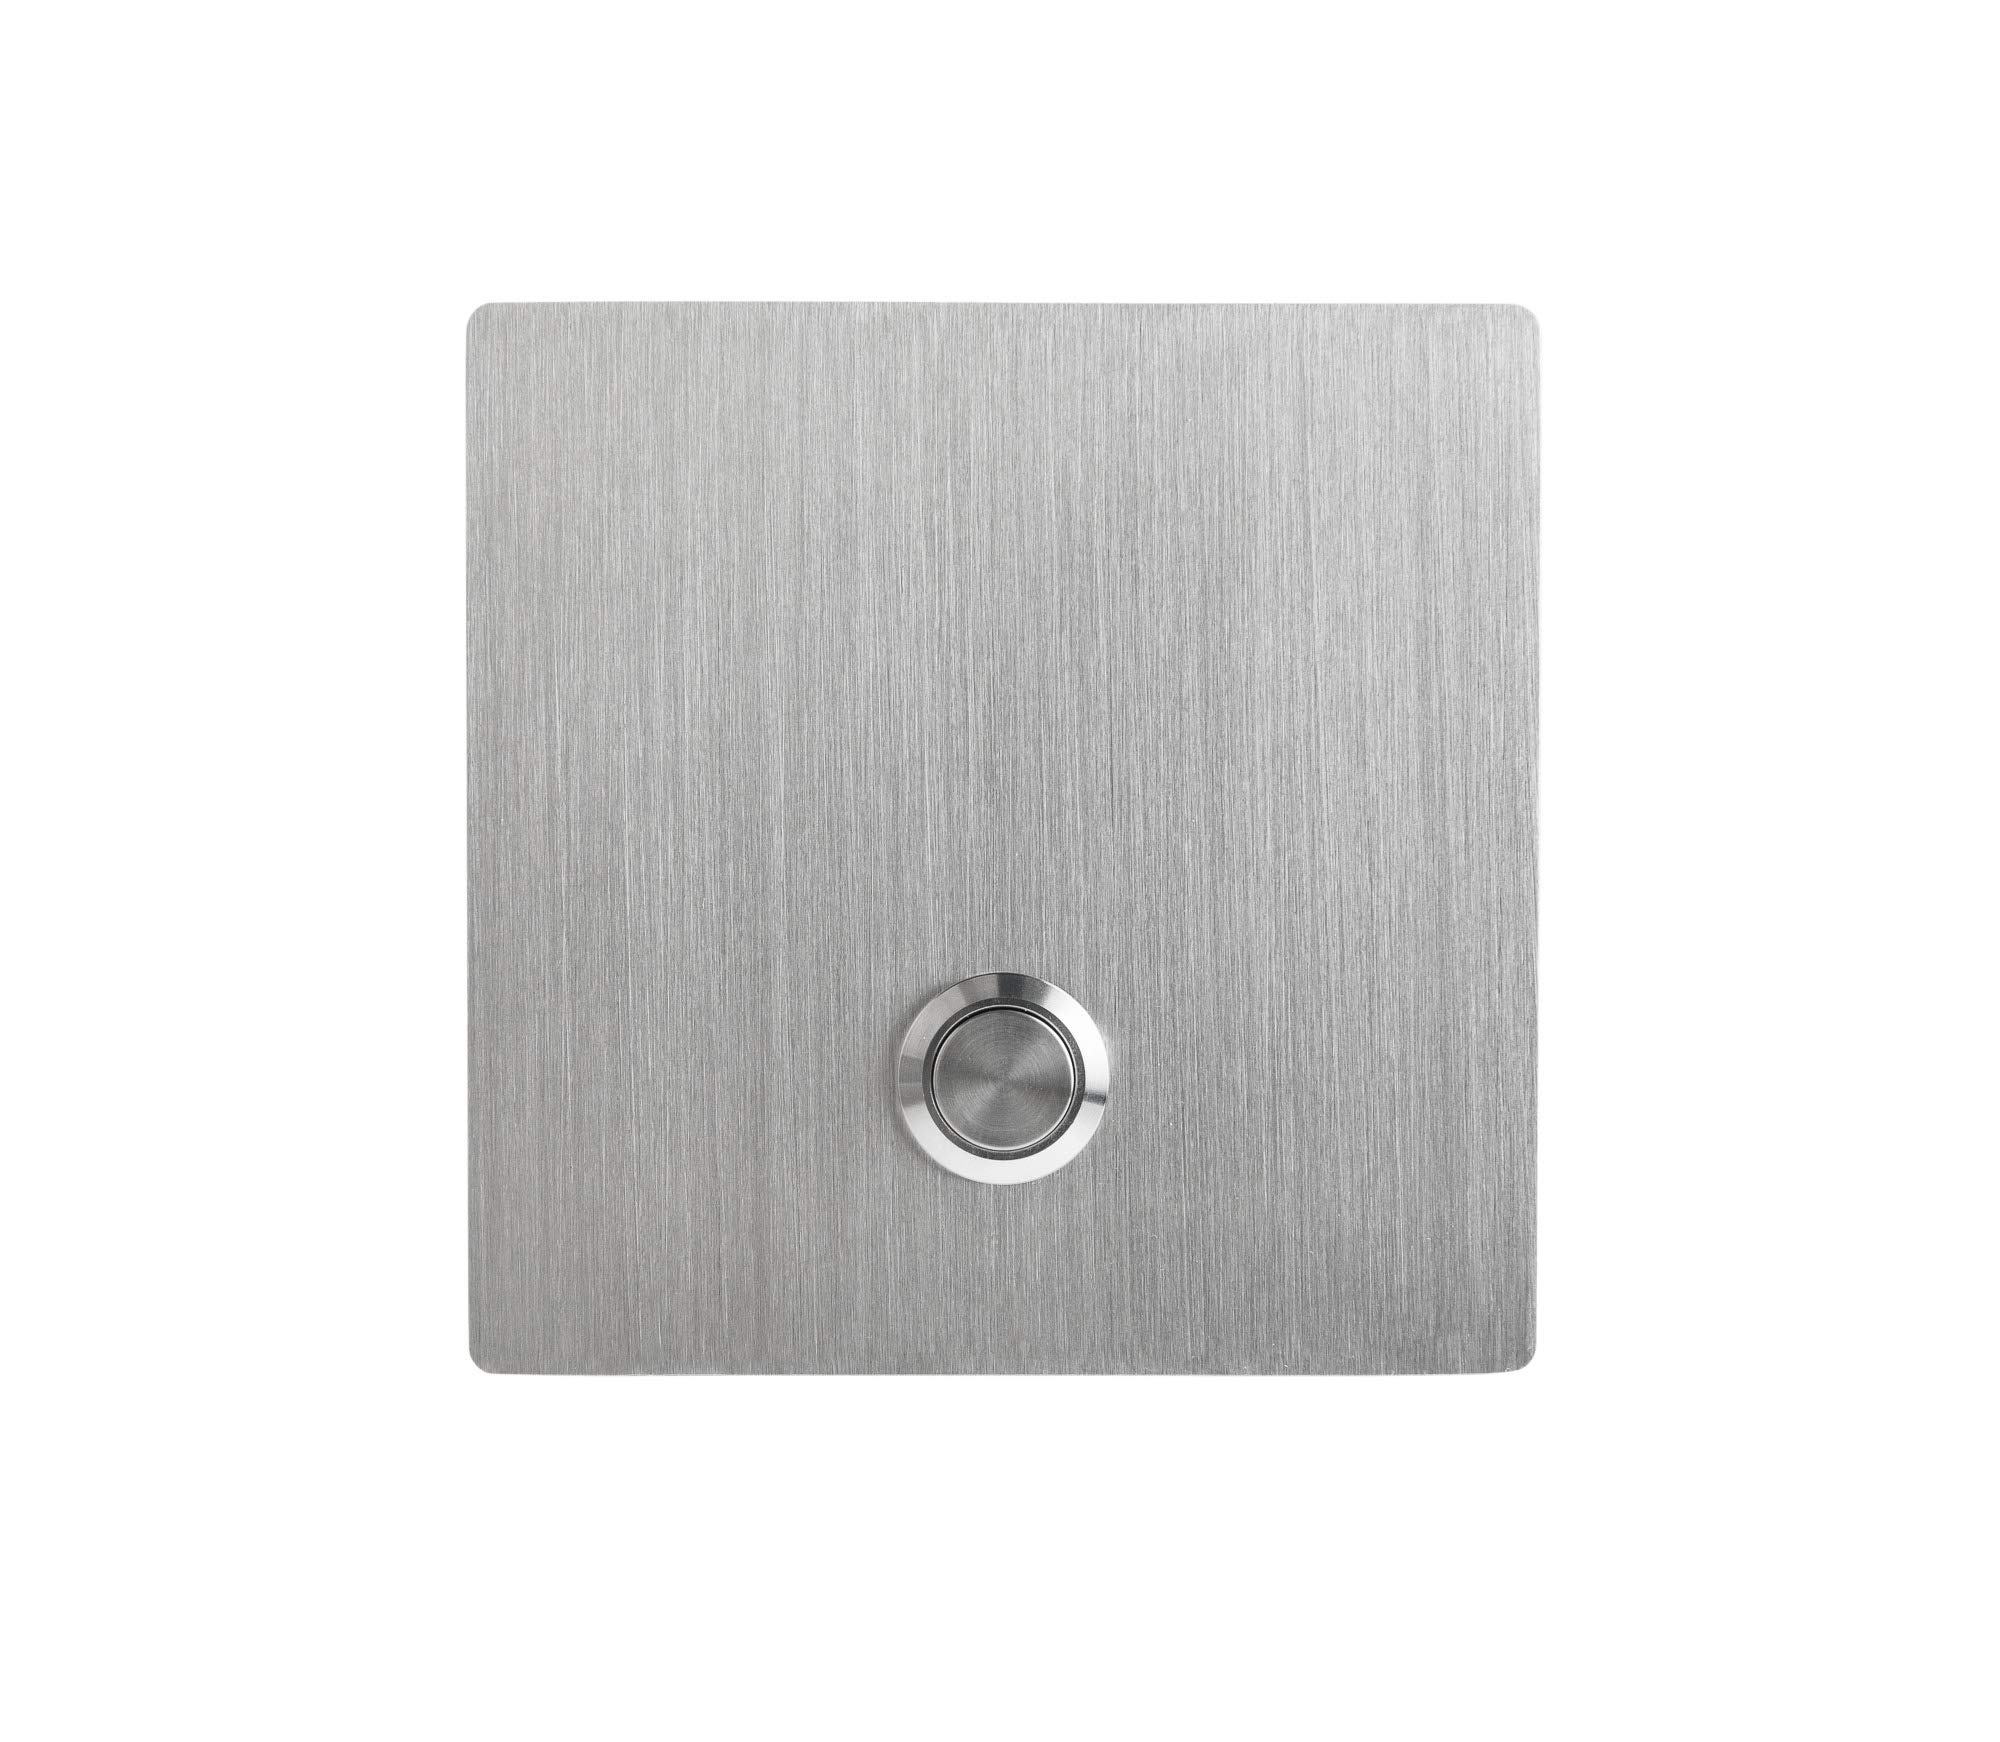 Modern Stainless Hardware Model S1 Stainless Steel Doorbell Button in grade 304 Stainless Steel 4mm thick